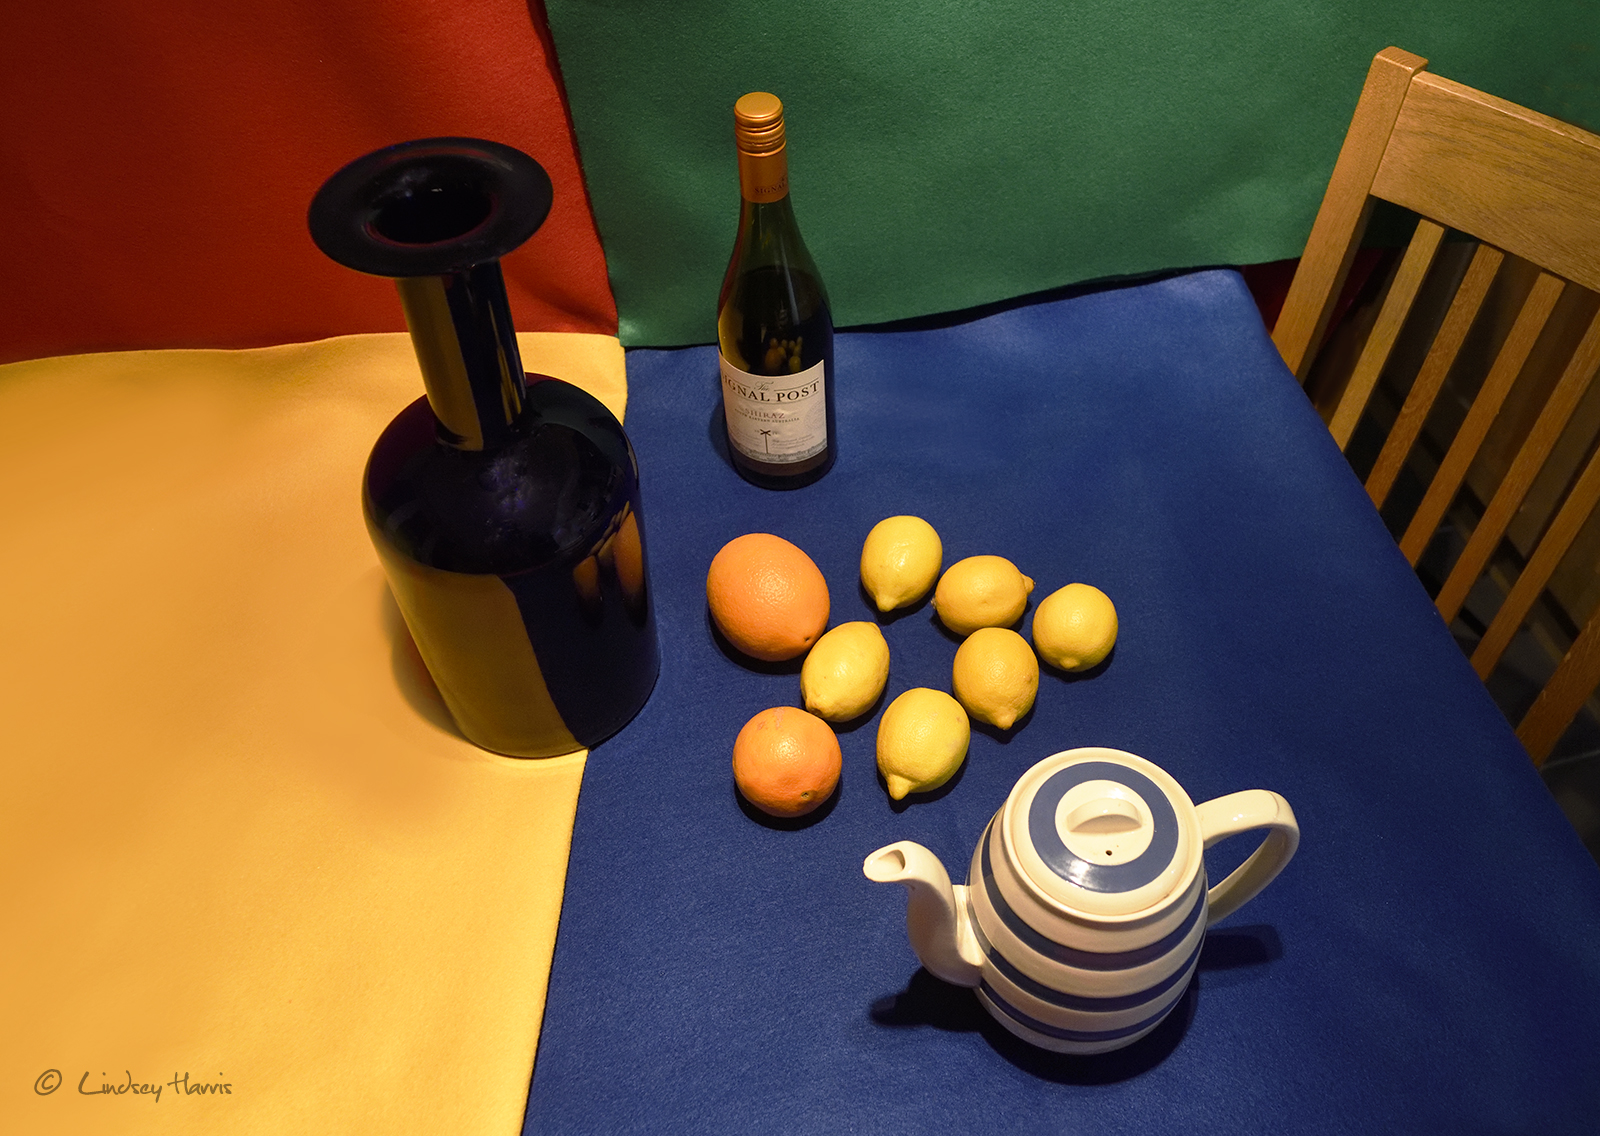 ⇡ Matisse style still life photograph